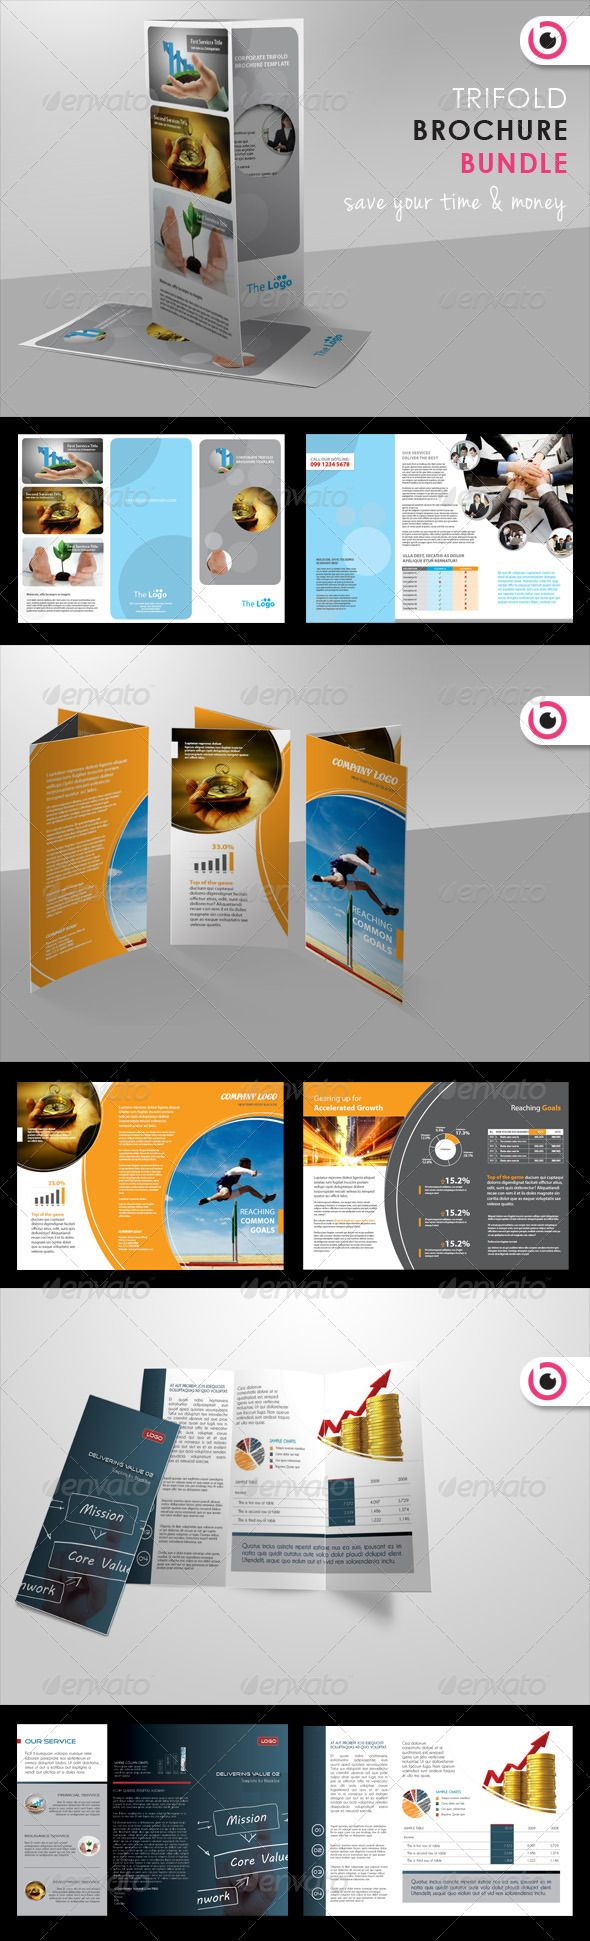 Trifold Brochure Bundle  #GraphicRiver         These brochure templates is designed for corporate business that needs clean, professional, modern brochure style. Sample texts and colors are easy to replace with just few clicks.  	 This bundle included 3 different tri-fold brochure:  	 Trifold Brochure  	 Corporate Tri-fold Brochure   	 Unique Tri-fold Brochure   	     Some of the brochure I have lovingly crafted…